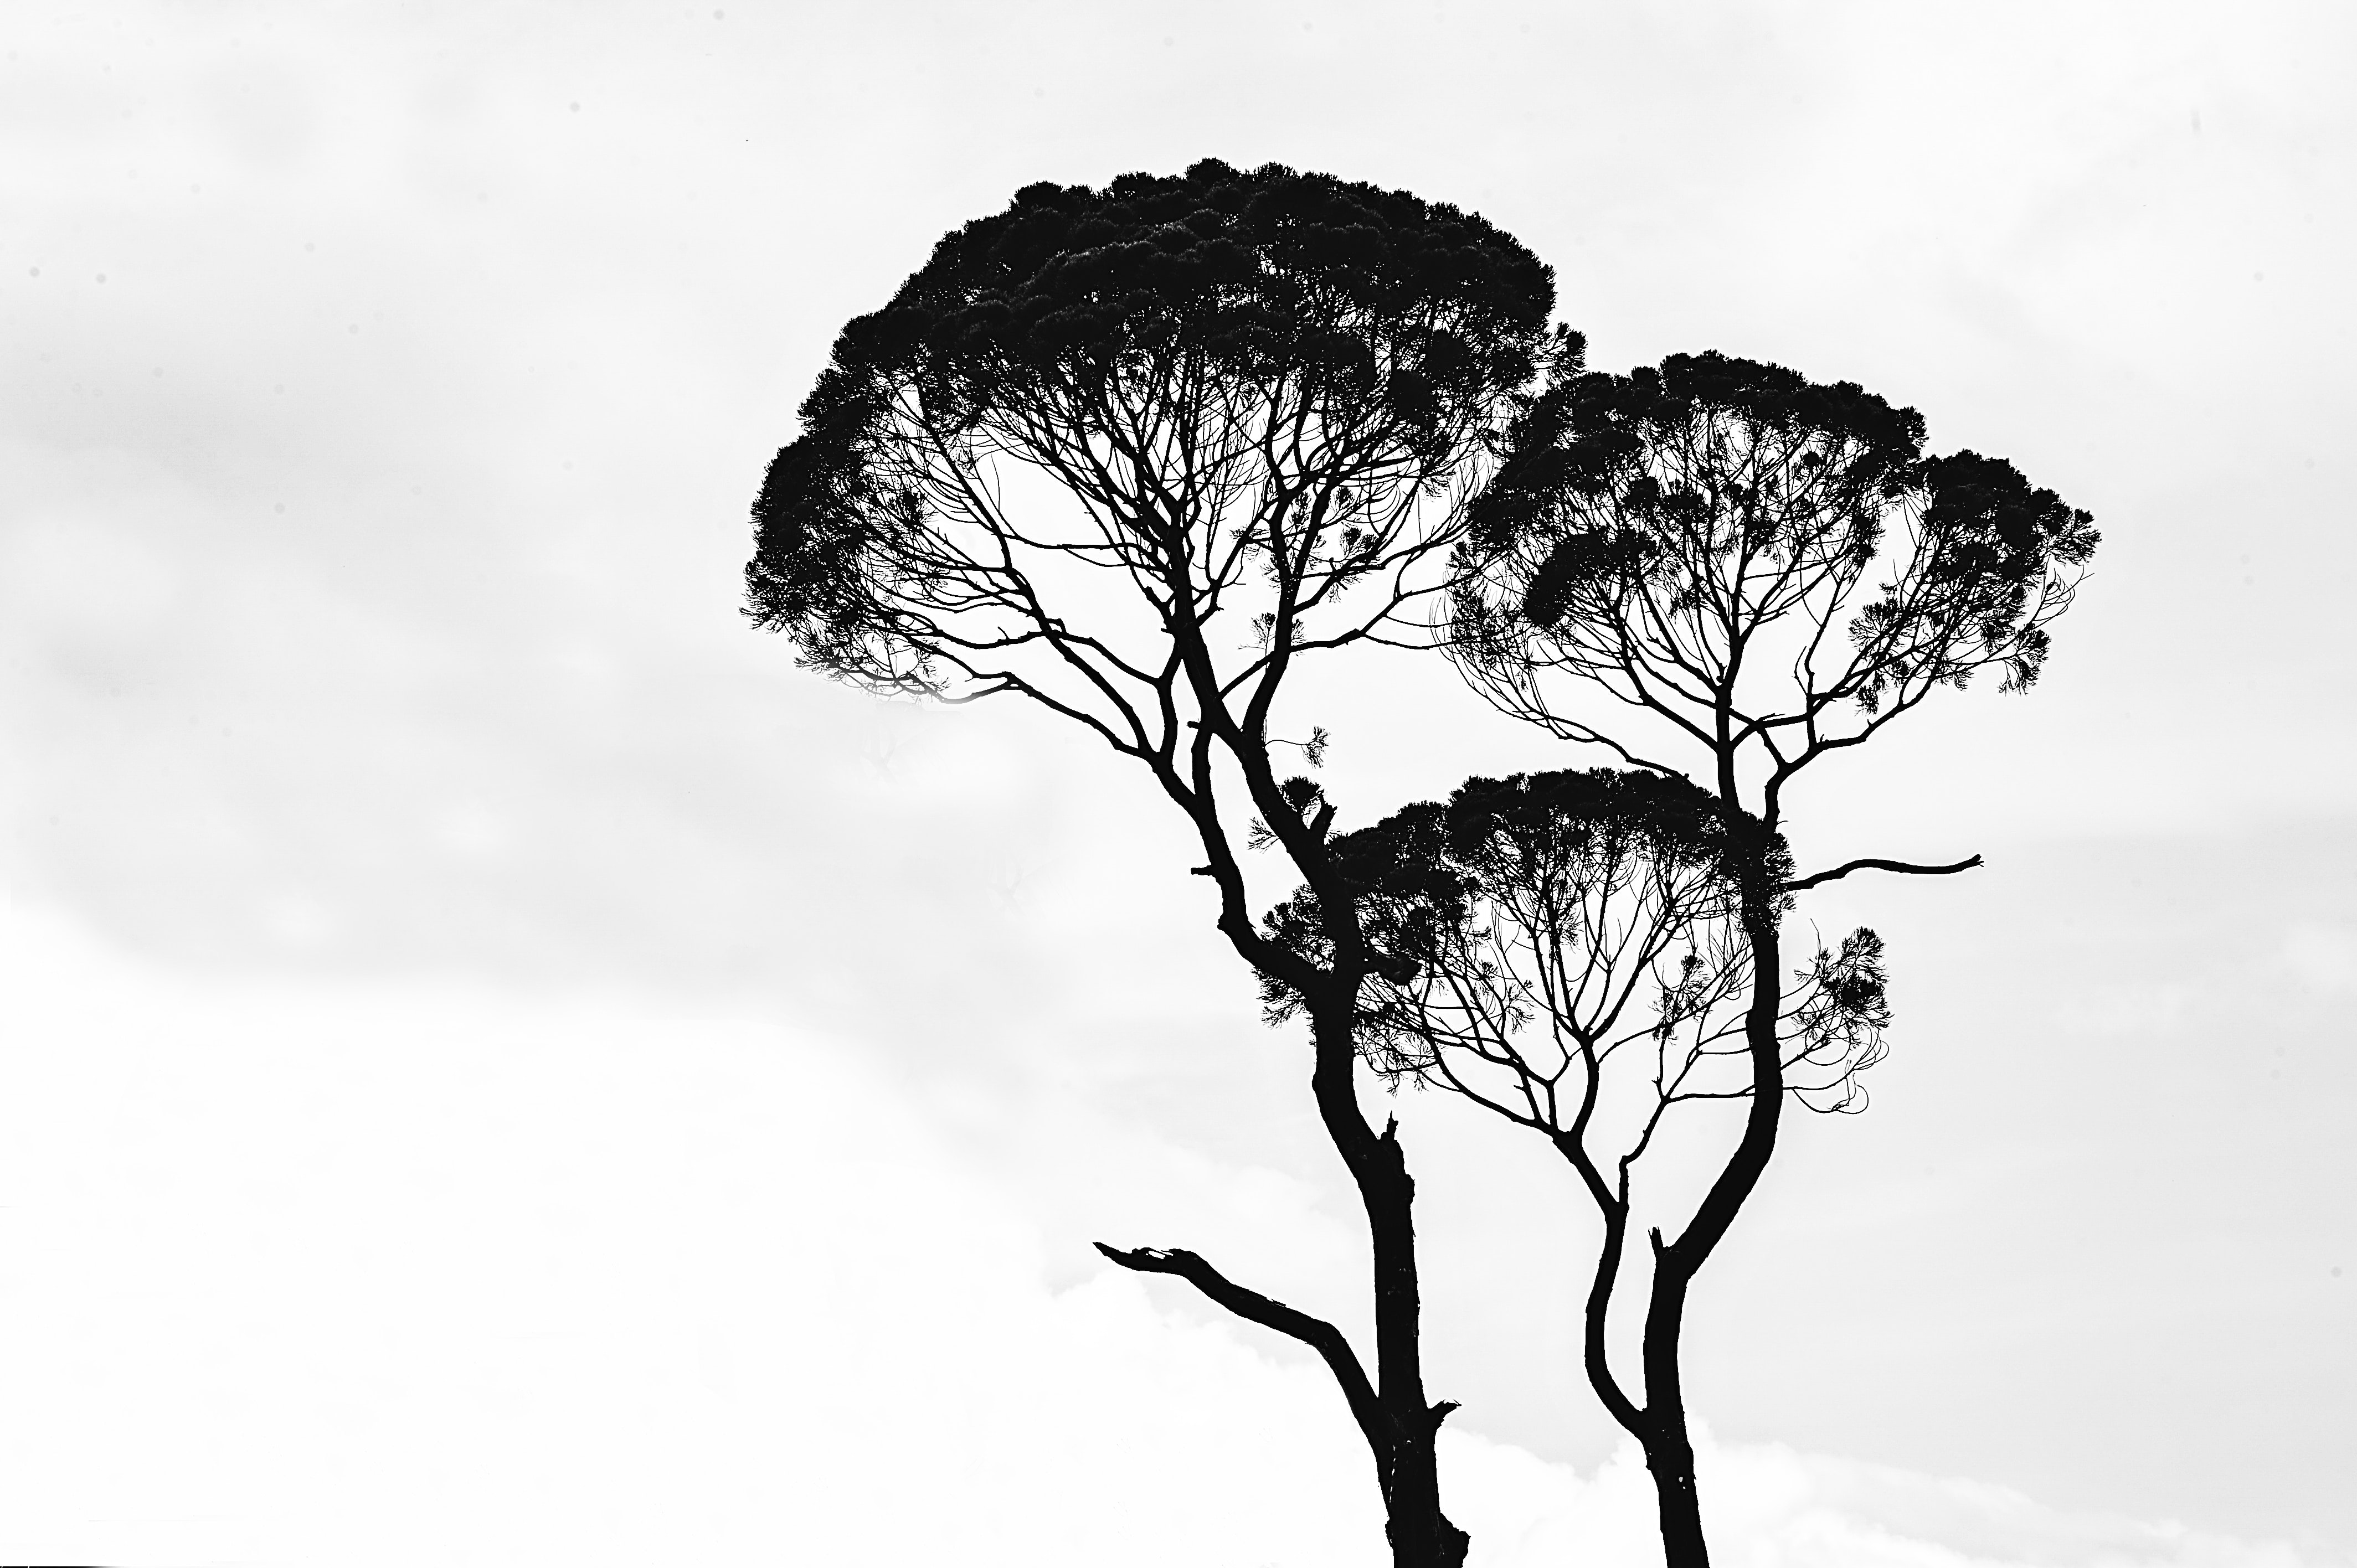 Black and white photograph of tree branches in the sky